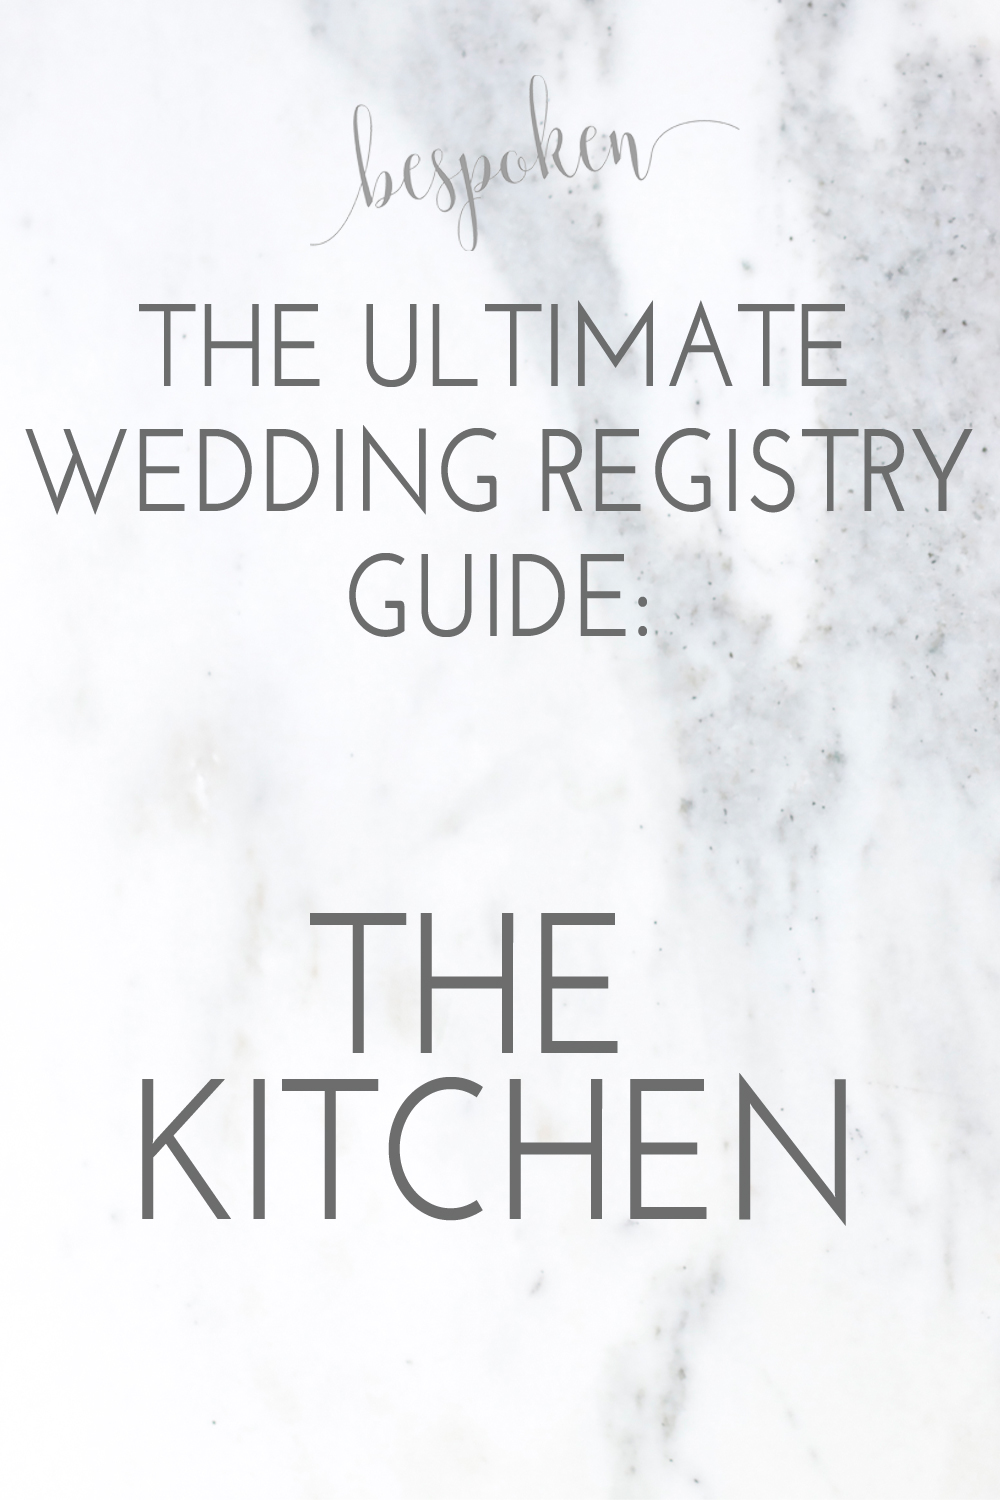 The Ultimate Wedding Registry Guide: The Kitchen | Bespoken www.bespokenweddings.com